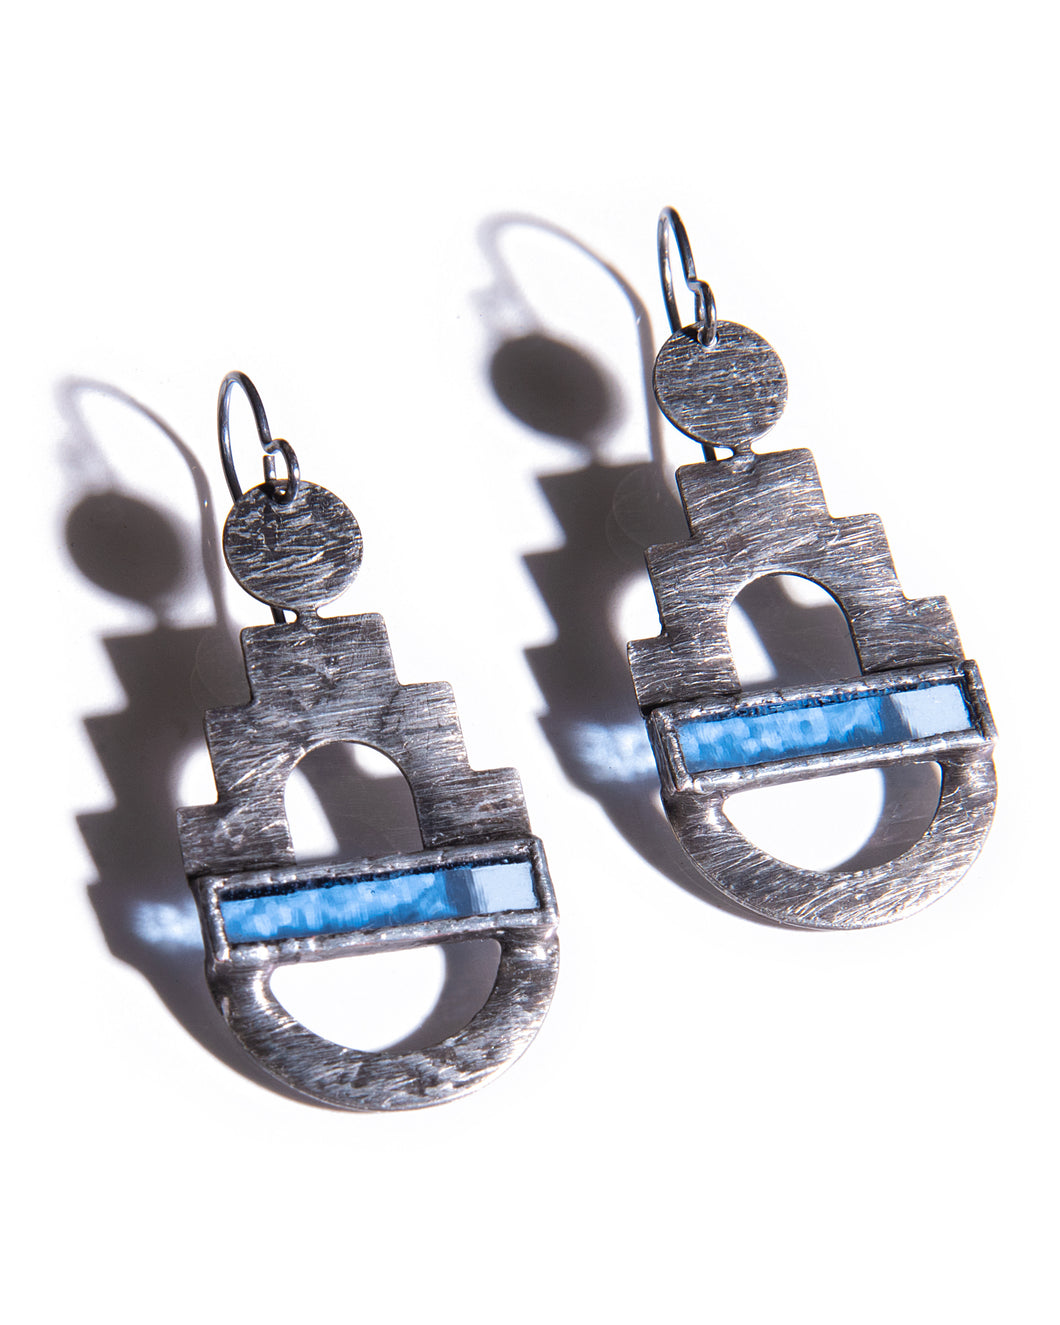 PERIWINKLE CITADEL EARRINGS